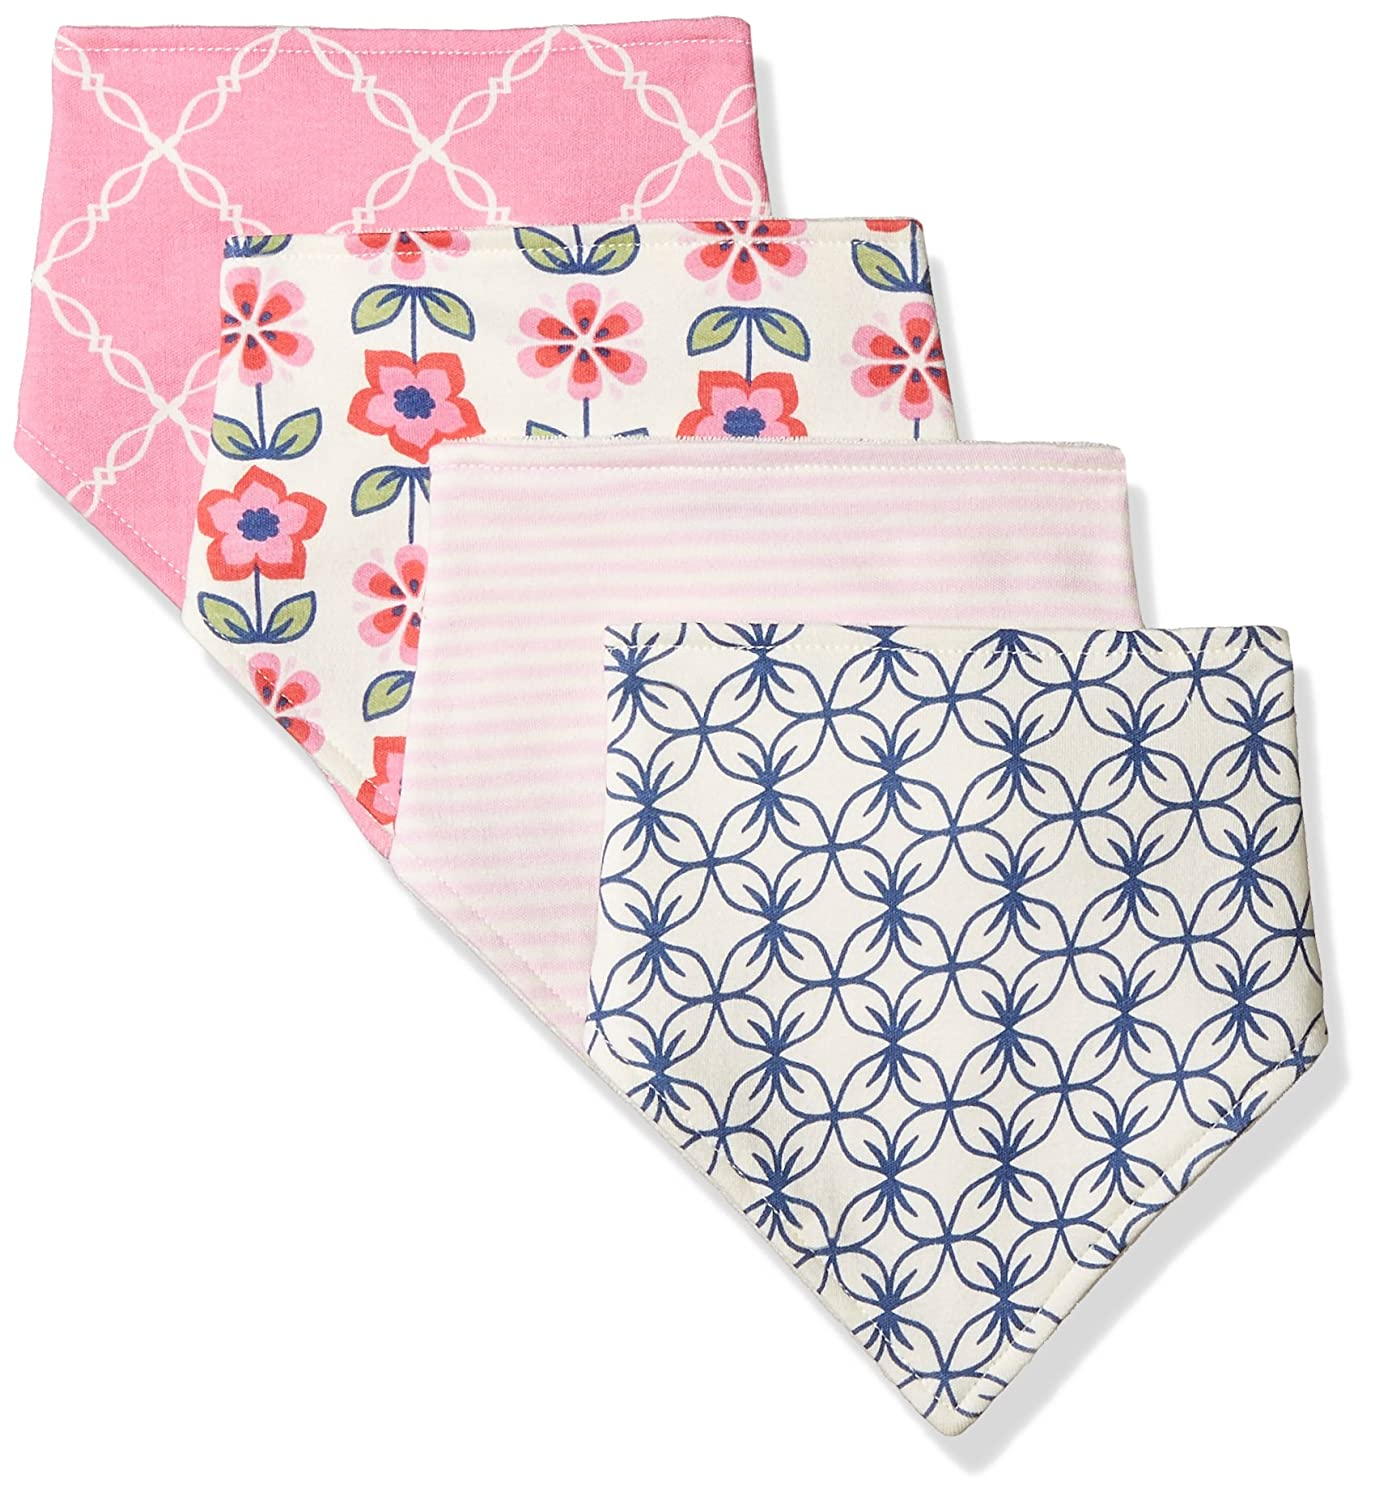 Touched by Nature Baby Organic Cotton Bandana Bibs, Bird 4Pk 0-9 Months 65002